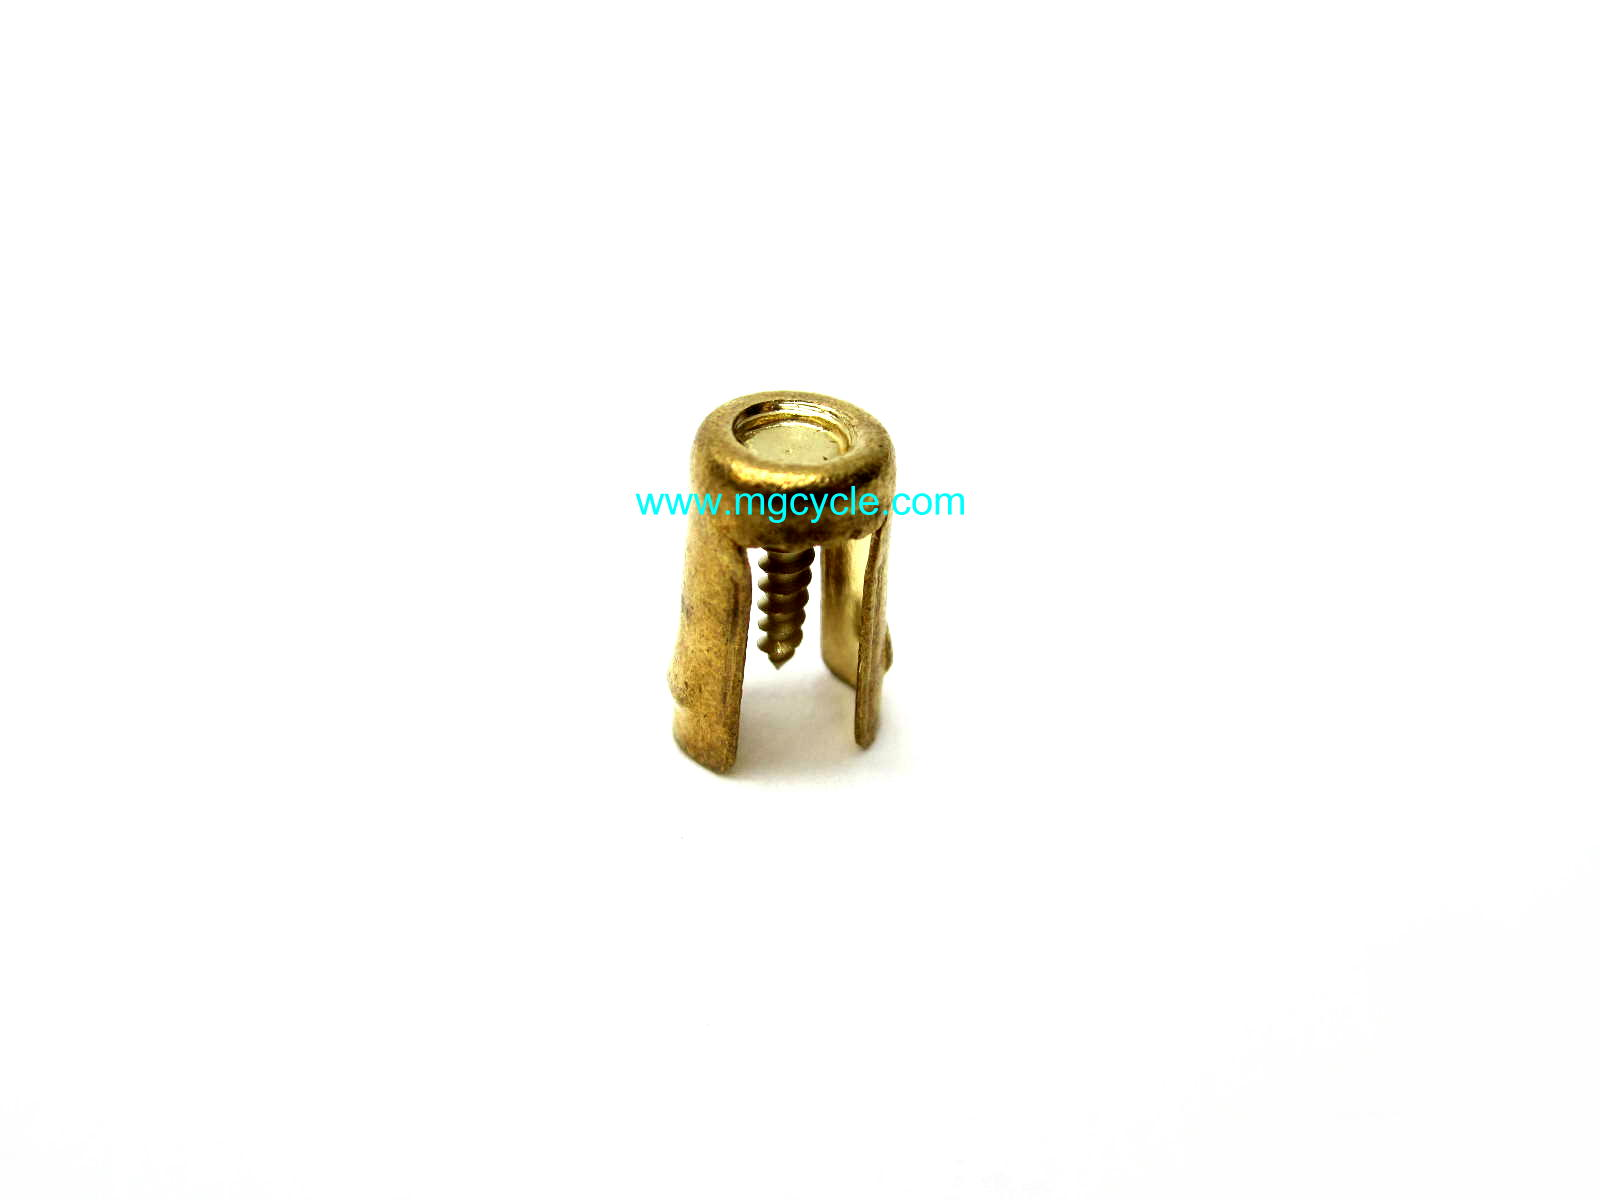 Screw-in plug wire end, for coils, distribributor cap